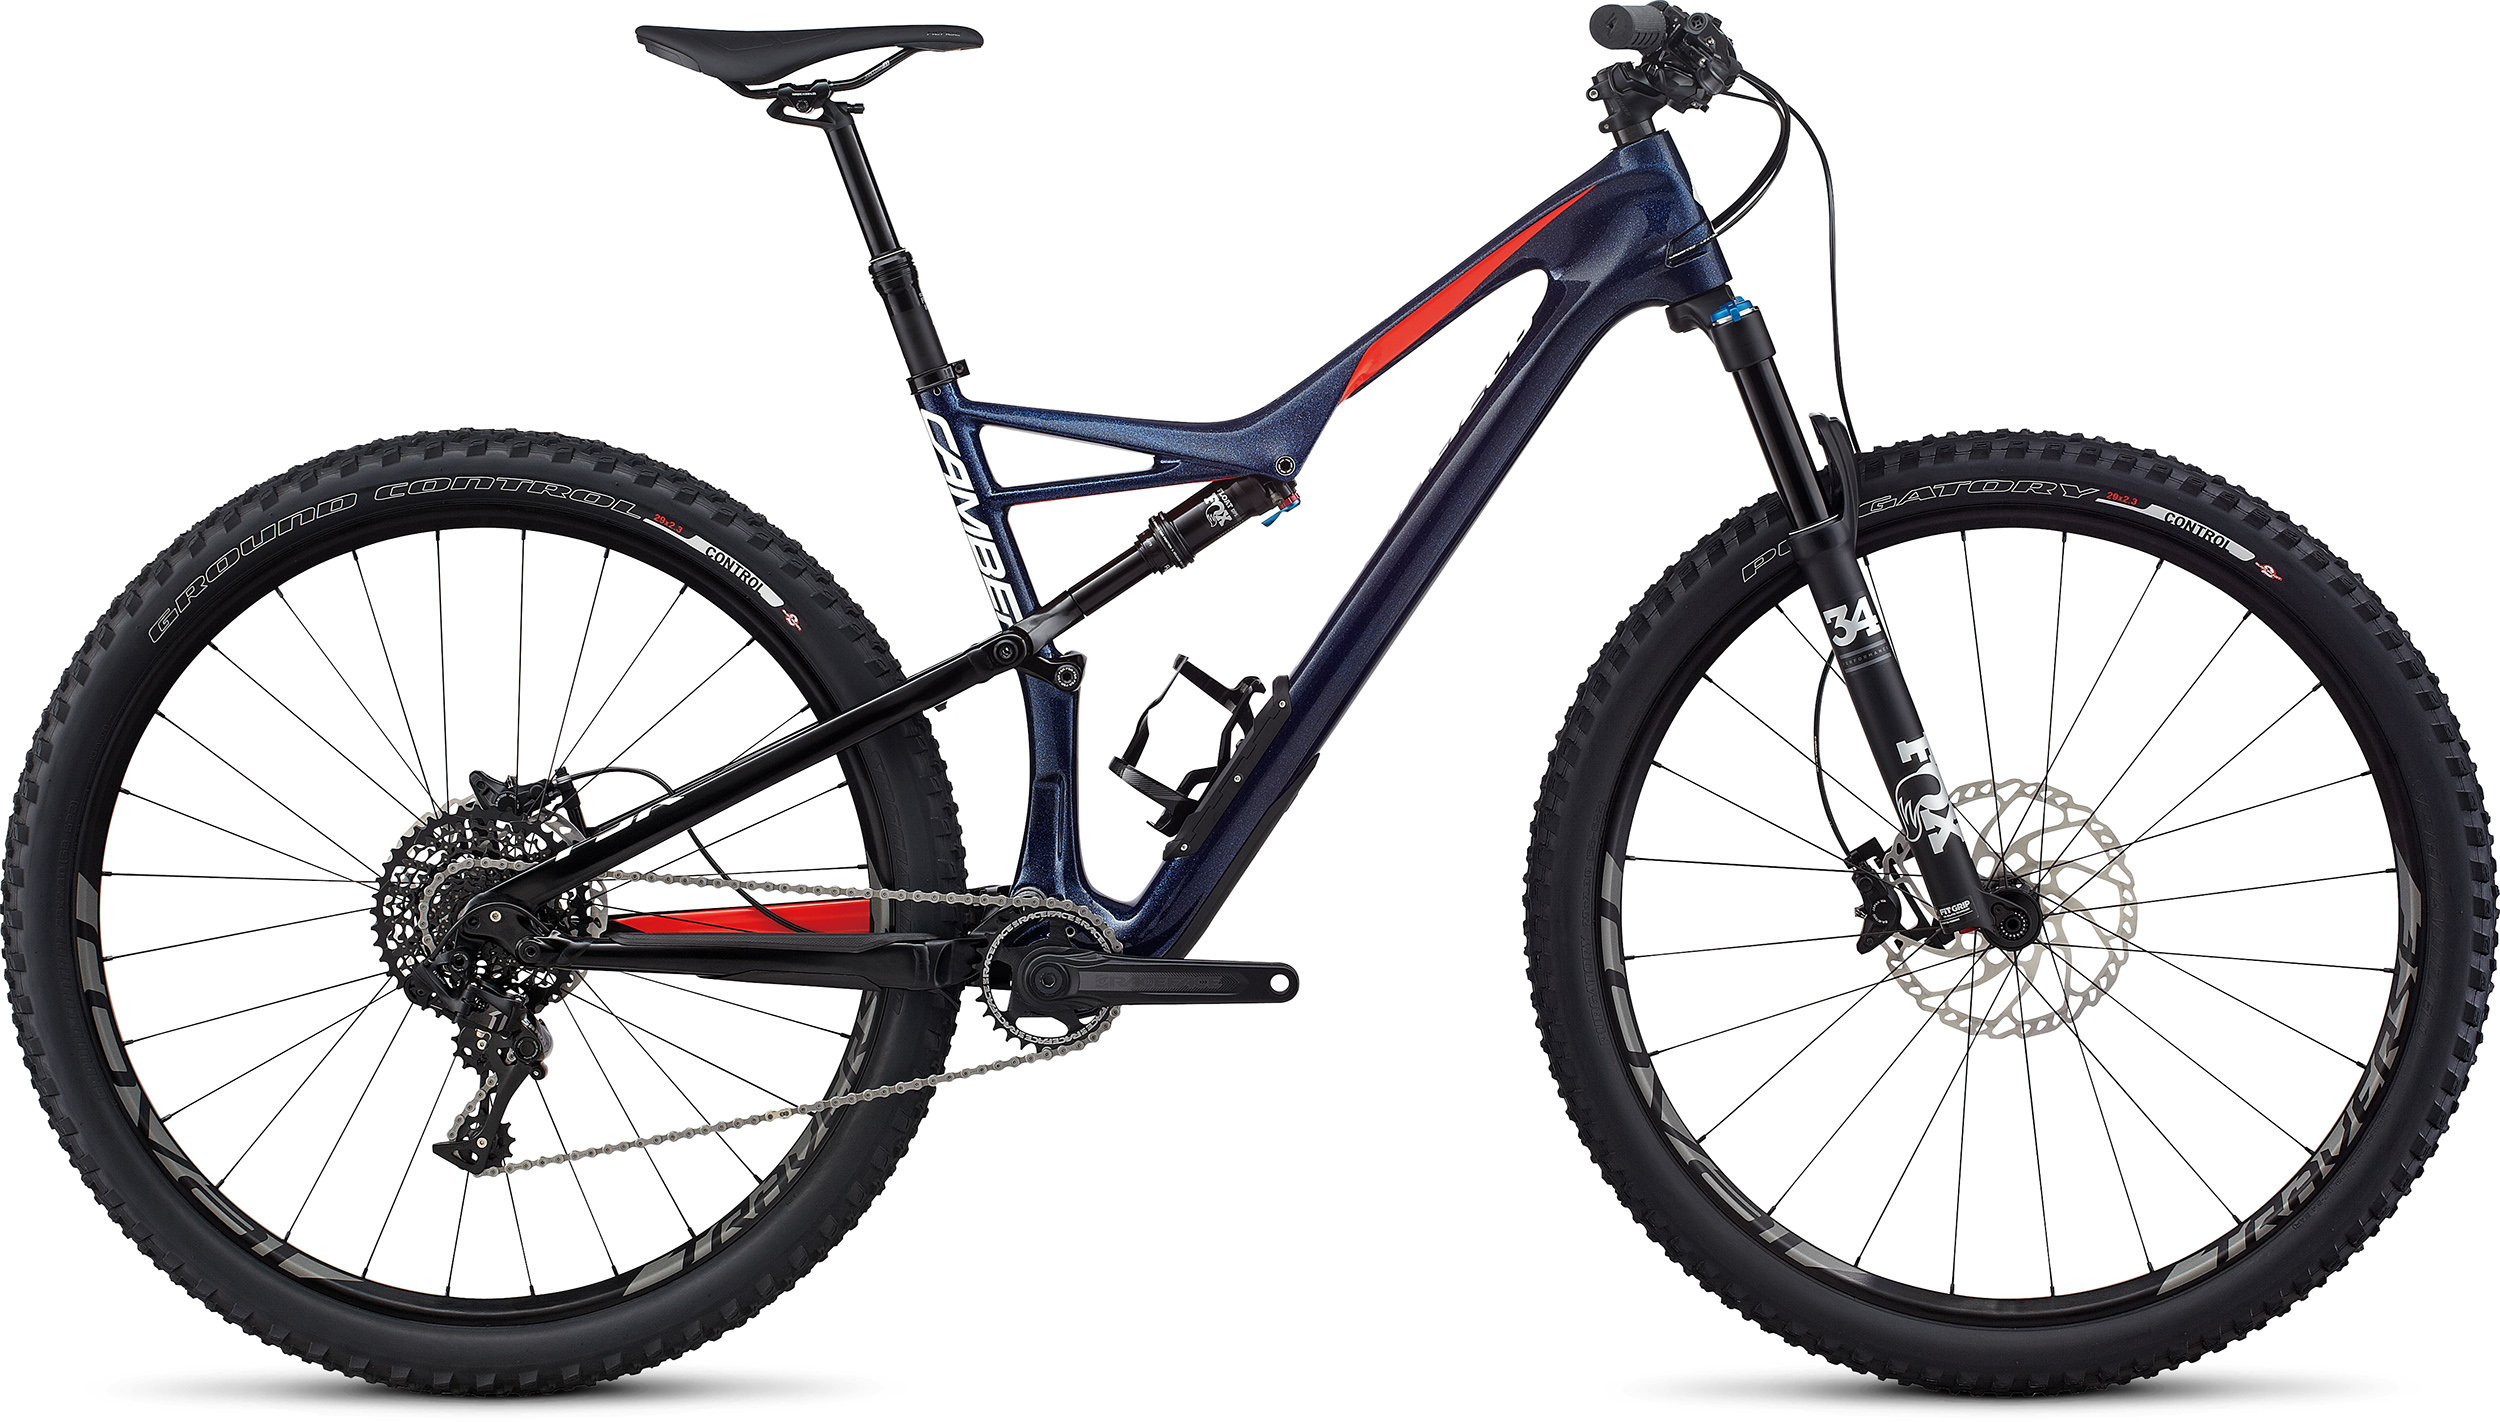 SPECIALIZED CAMBER FSR EXPERT CARBON 29 NBLBLU/NRDCRED/METWHT S - Randen Bike GmbH